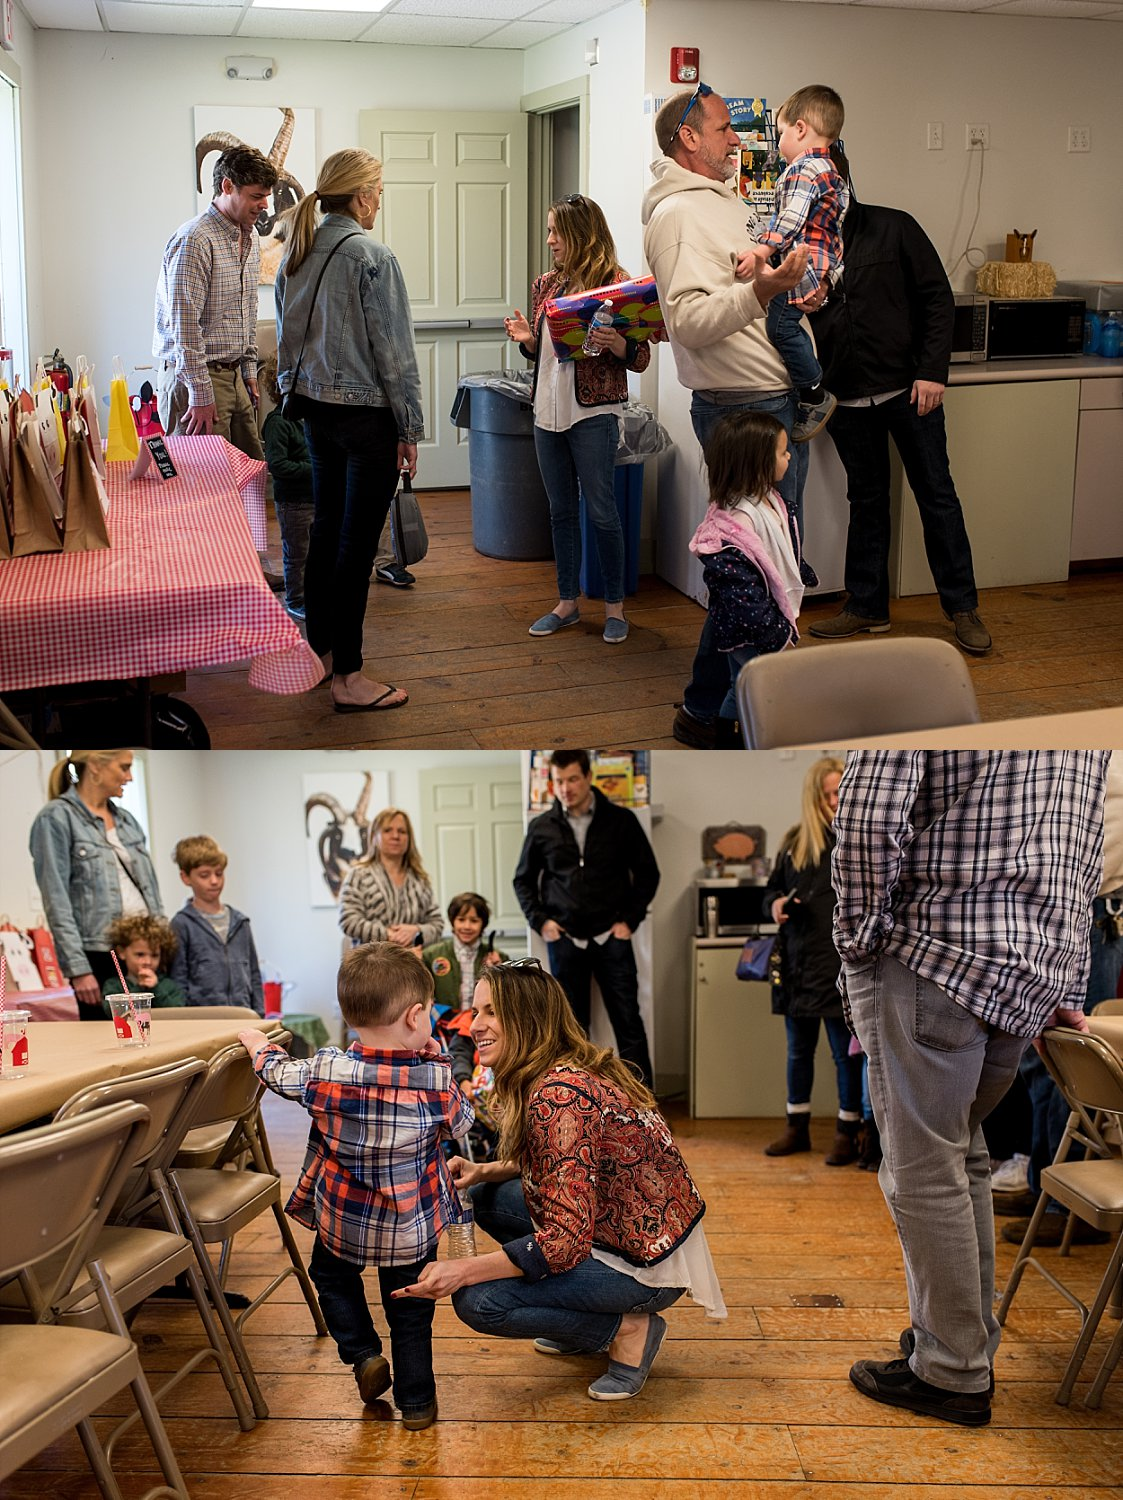 Family enjoying a birthday party at Stamford Nature Center in Connecticut. CT family photographer